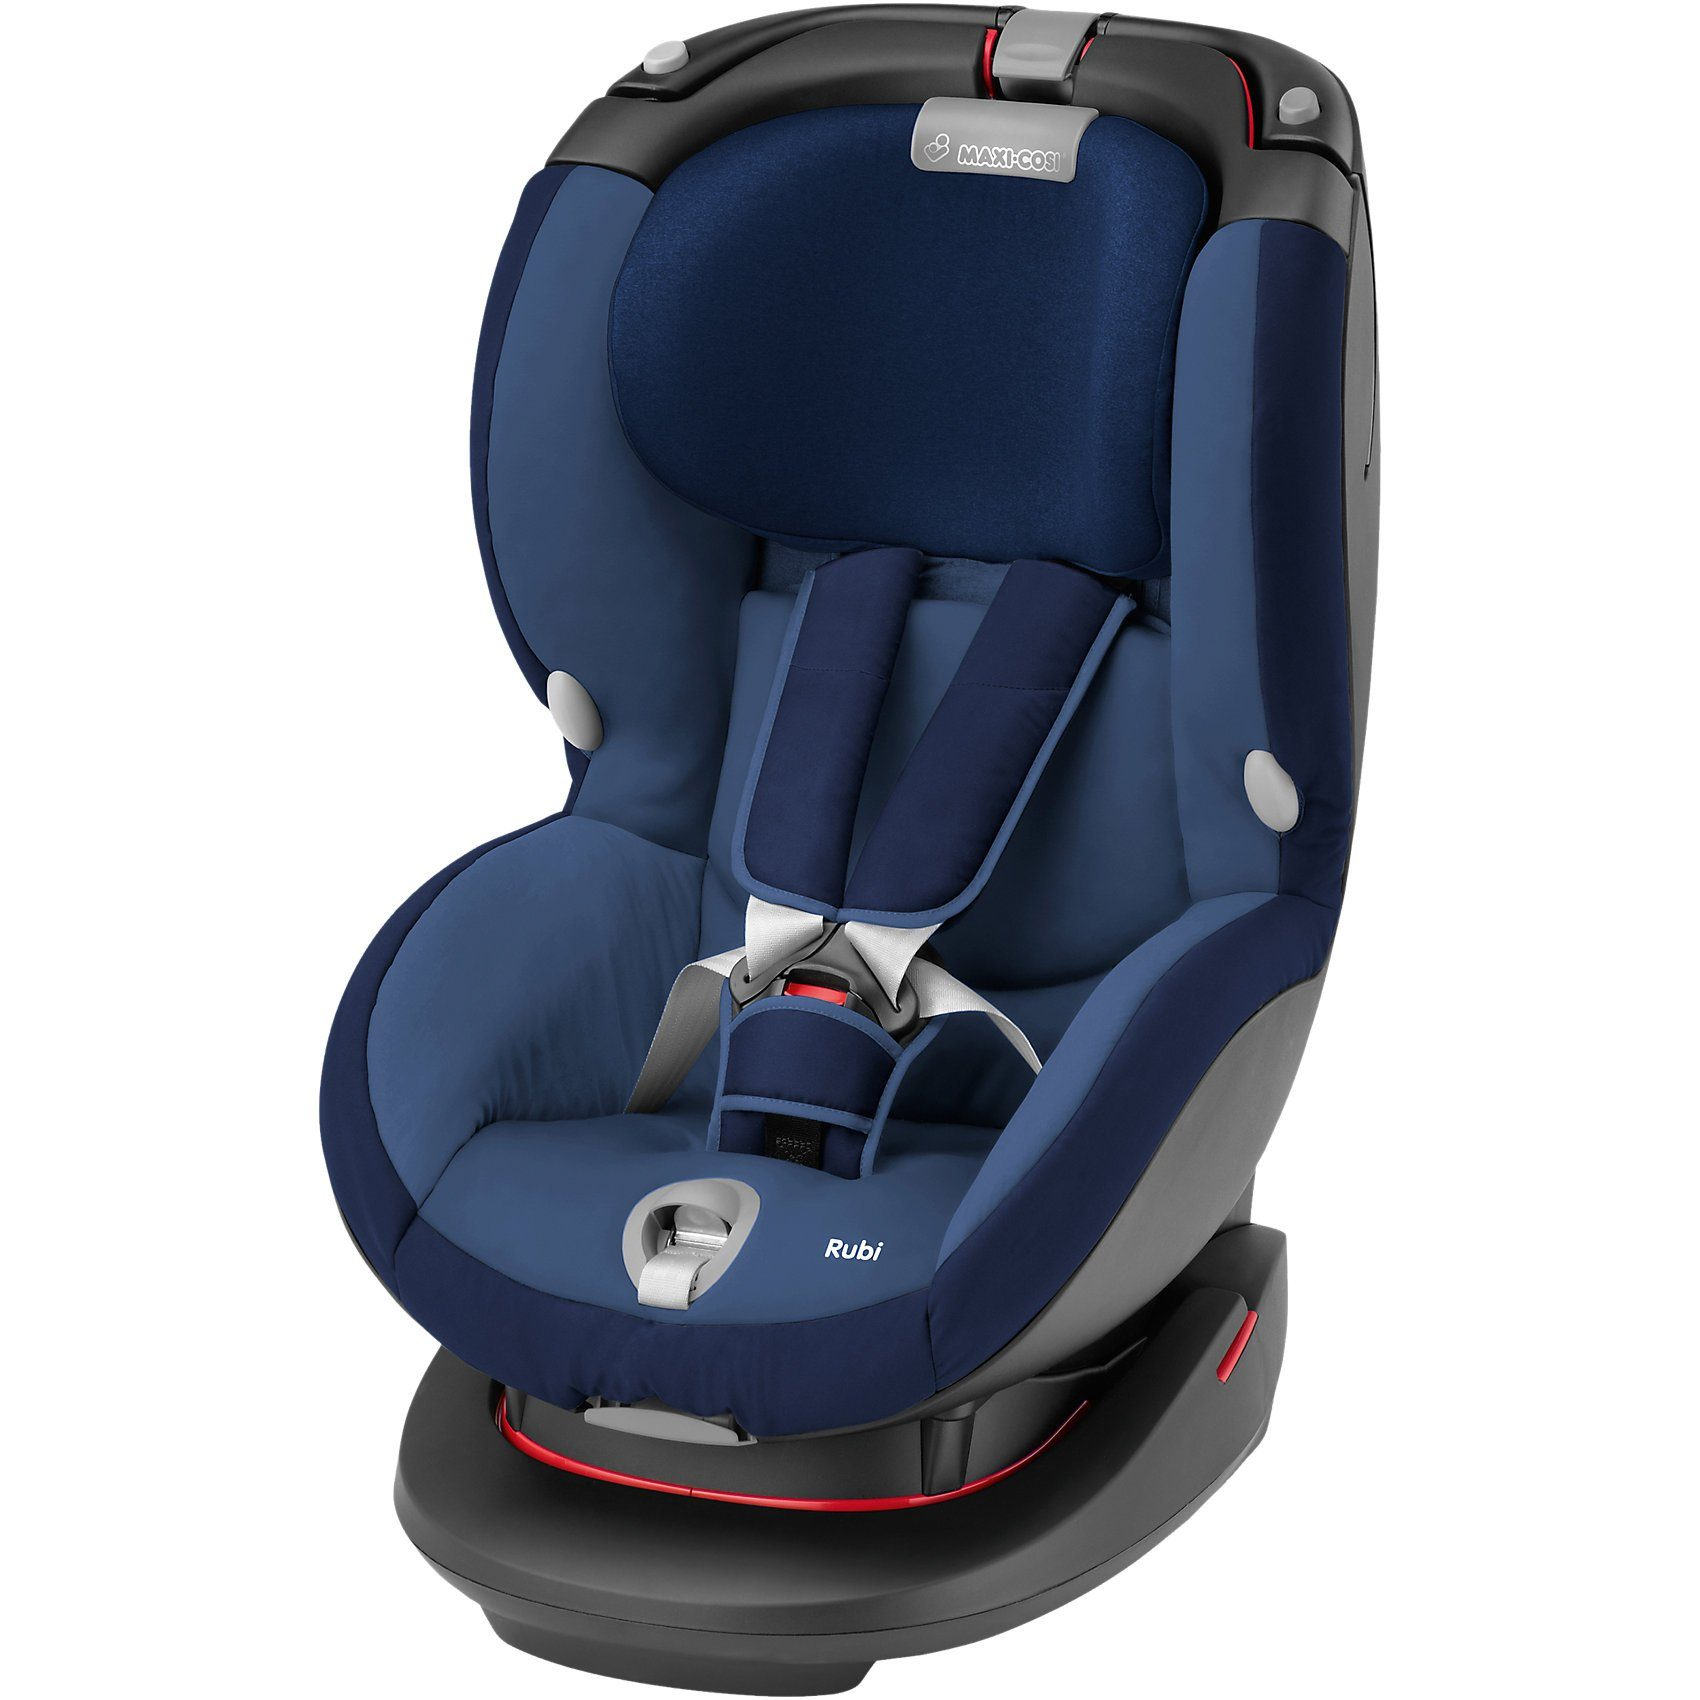 Maxi-Cosi Auto-Kindersitz Rubi XP, blue night, 2016